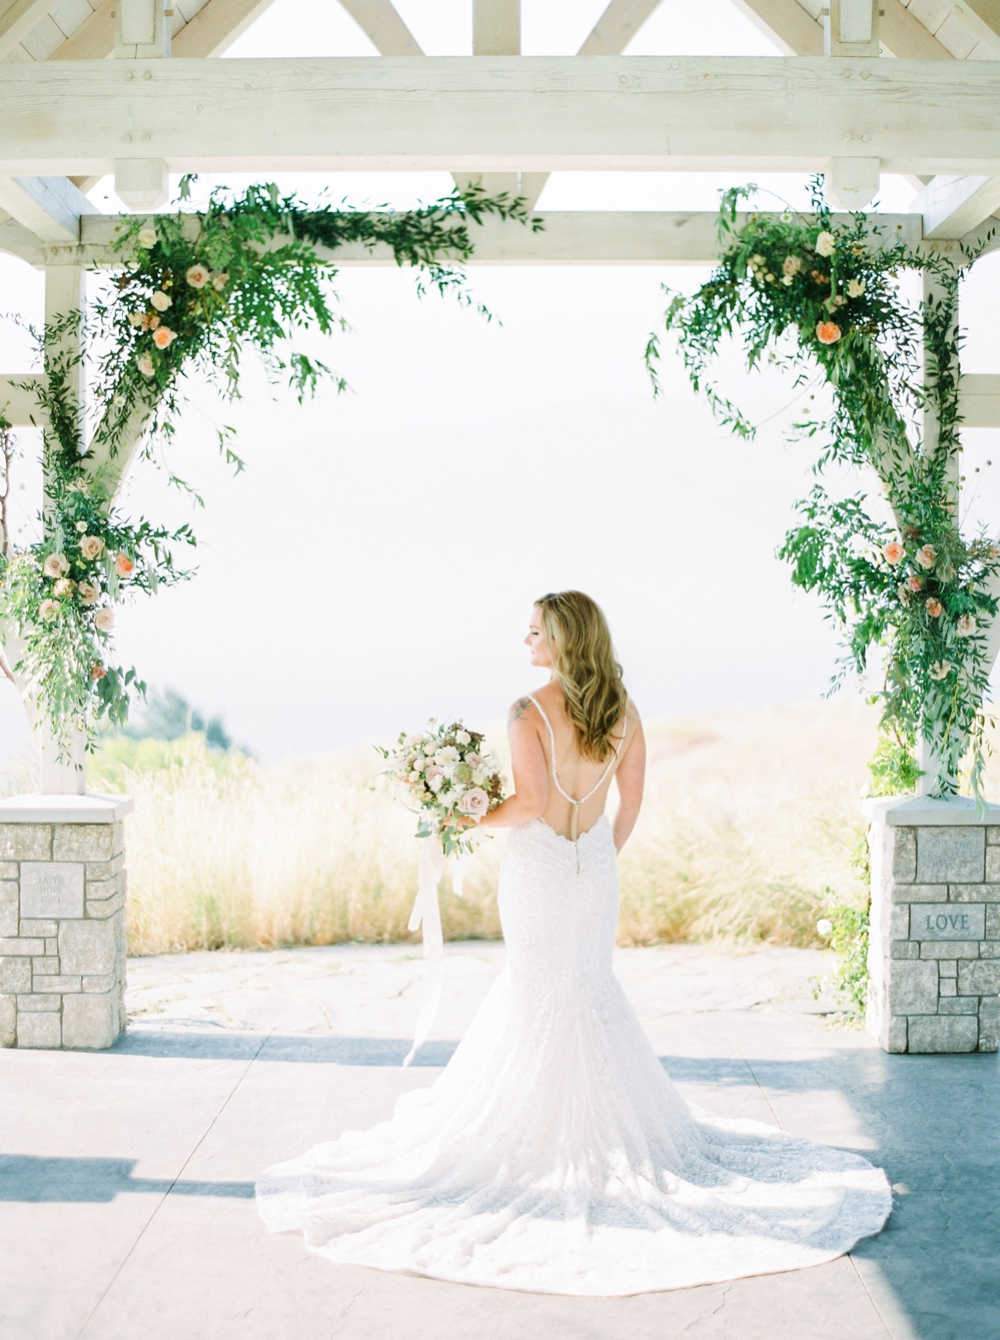 Sanctuary Gardens Kelowna Wedding | Elopement Photography | Bridal Portraits | Justine Milton Fine Art Film Wedding Photographers